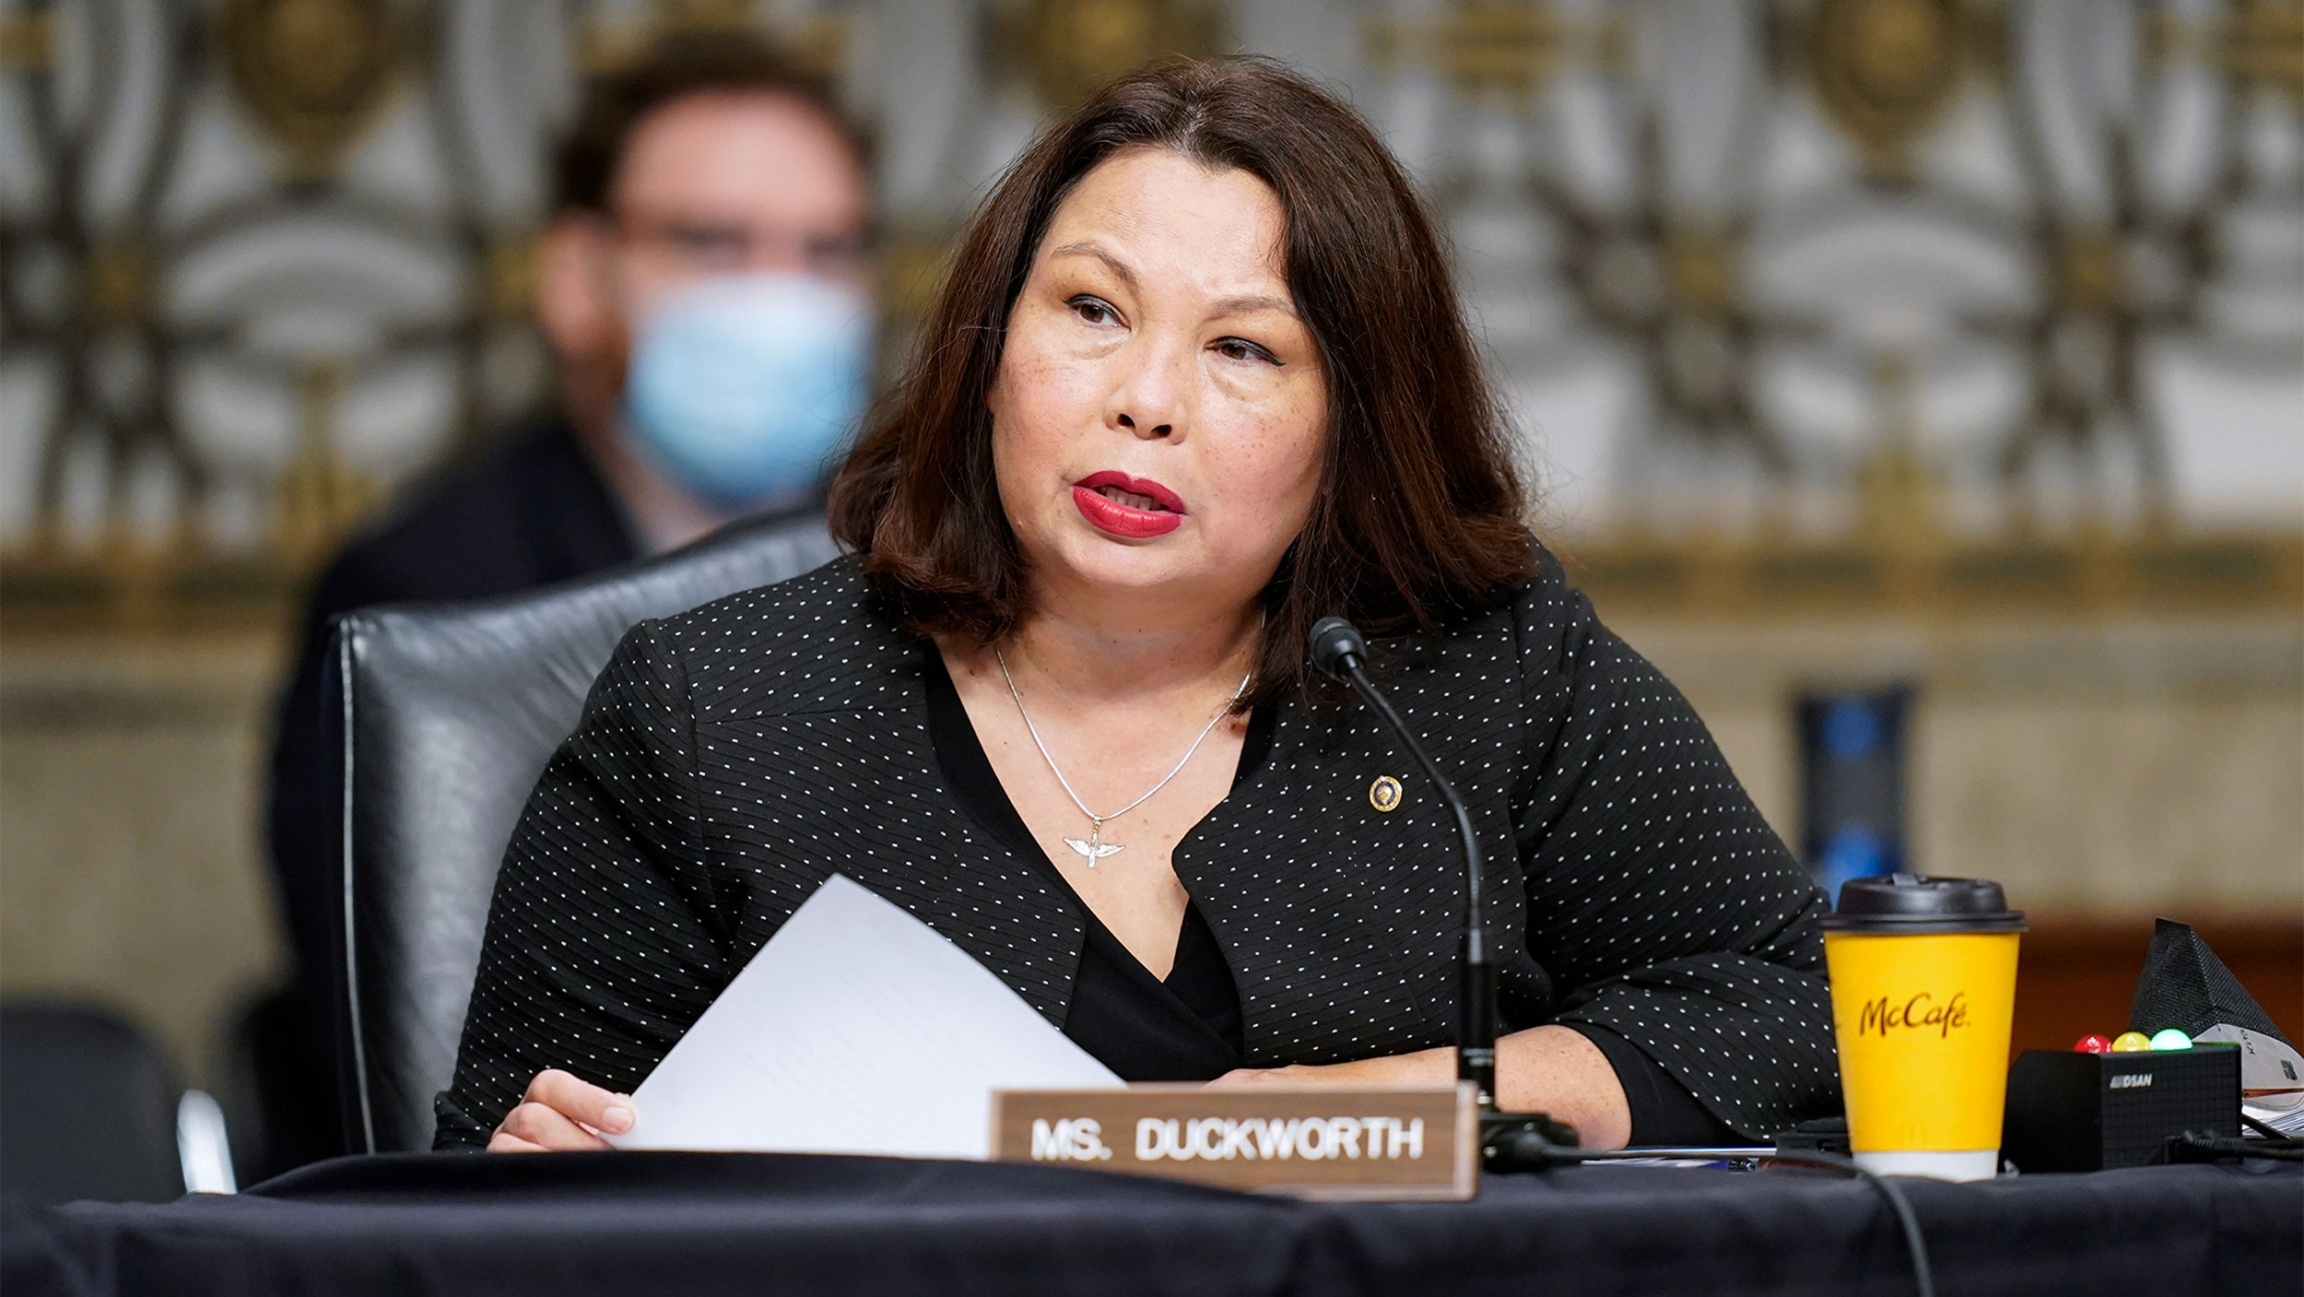 Democratic Senator Tammy Duckworth, from Illinois, speaks during a Senate Armed Services Committee hearing on the conclusion of military operations in Afghanistan and plans for future counterterrorism operations on Capitol Hill in Washington